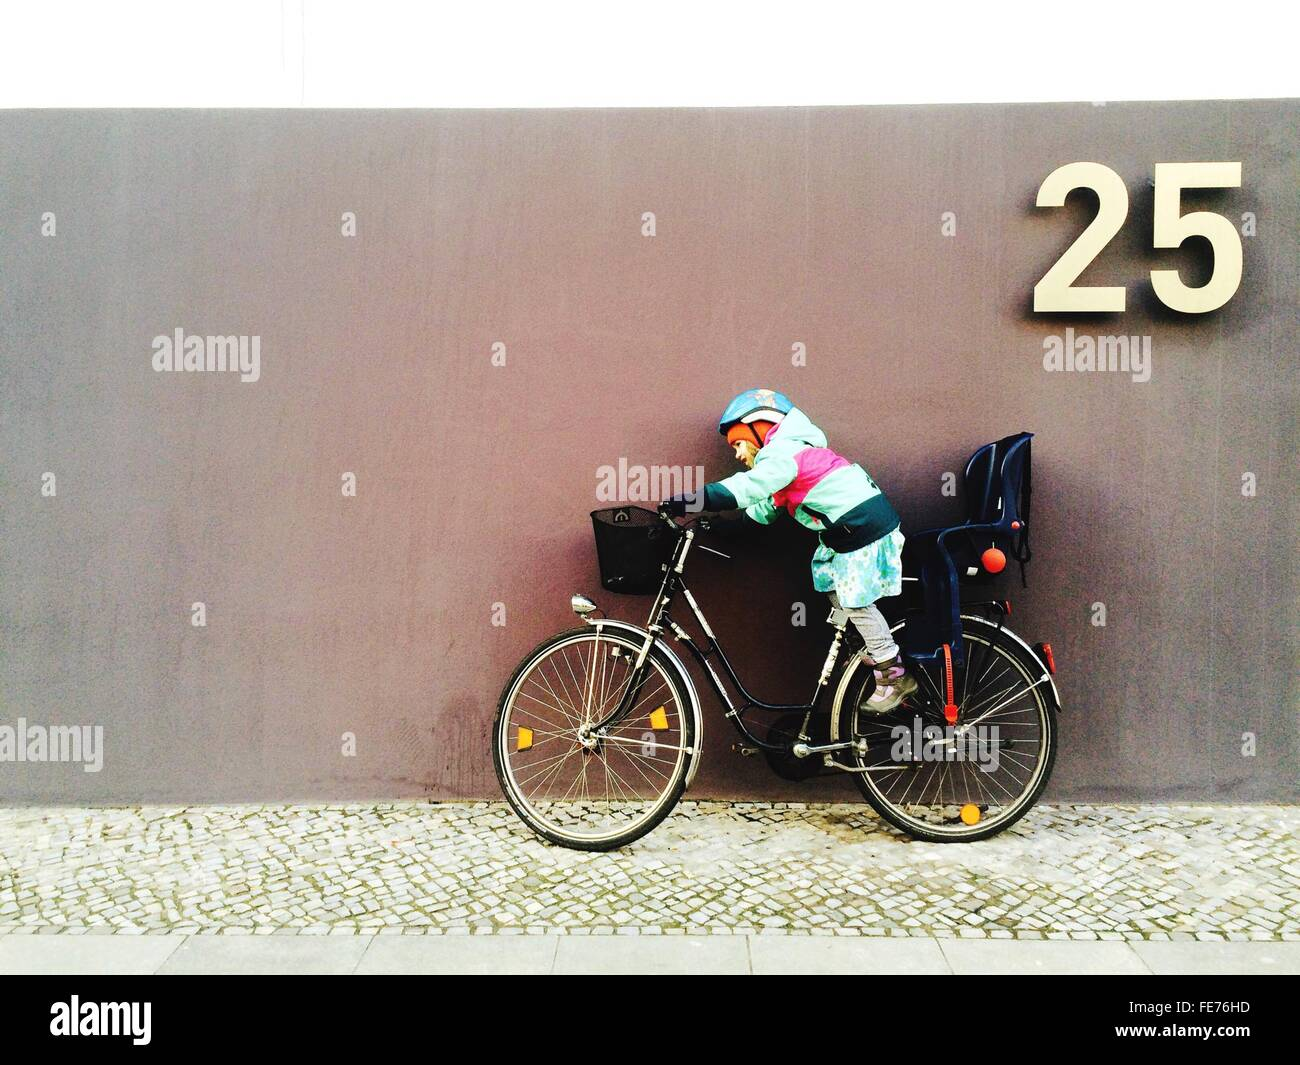 Boy On Bicycle Against Wall - Stock Image